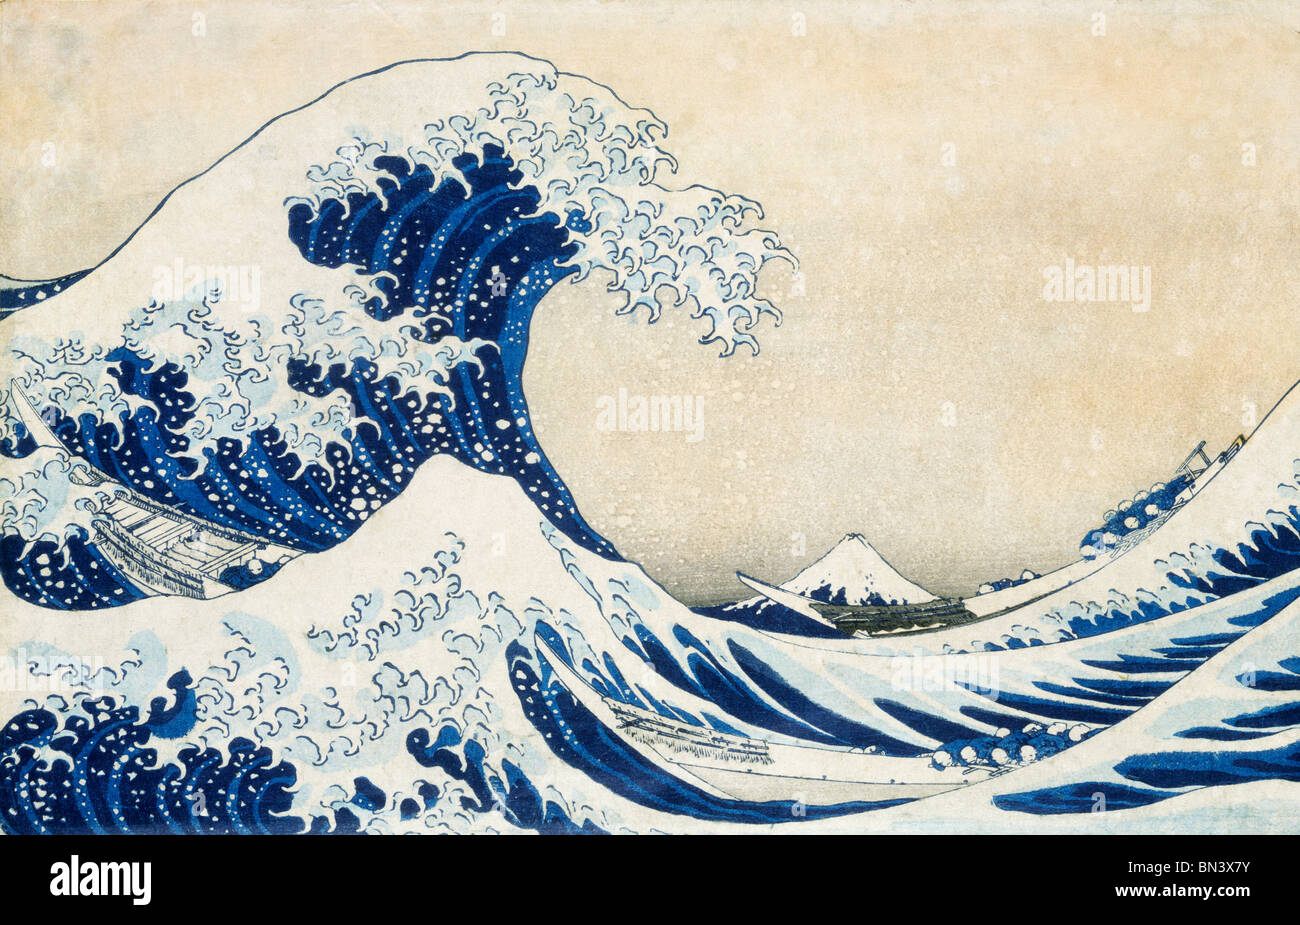 La grande vague, par Katsushika Hokusai. Le Japon, 19e siècle Photo Stock